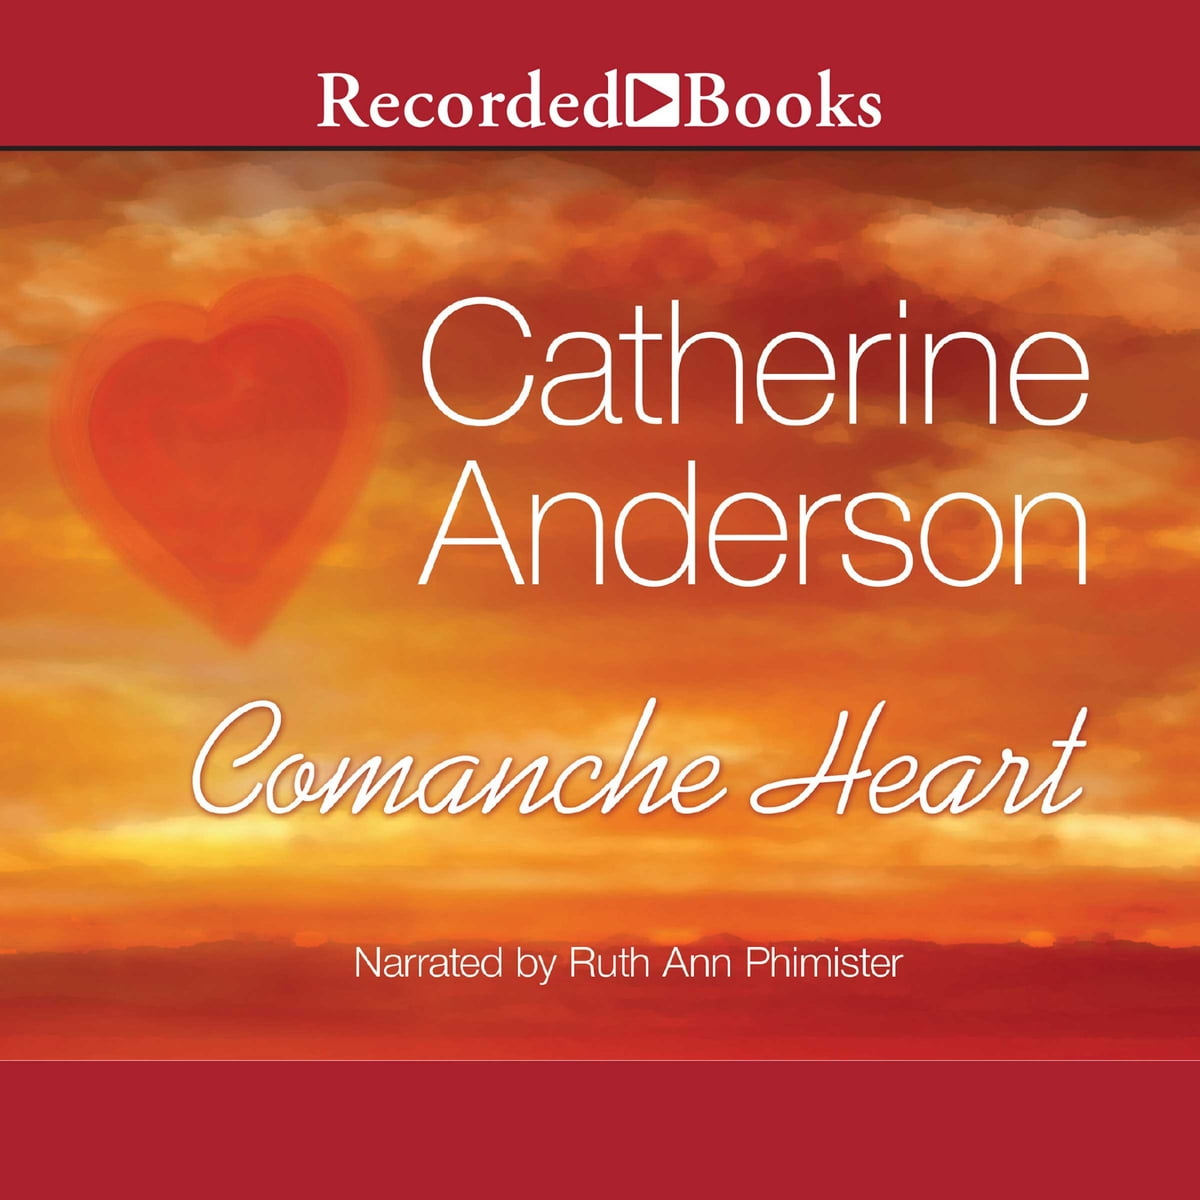 Comanche heart audiobook by catherine anderson 9781440775383 comanche heart audiobook by catherine anderson 9781440775383 rakuten kobo fandeluxe Choice Image